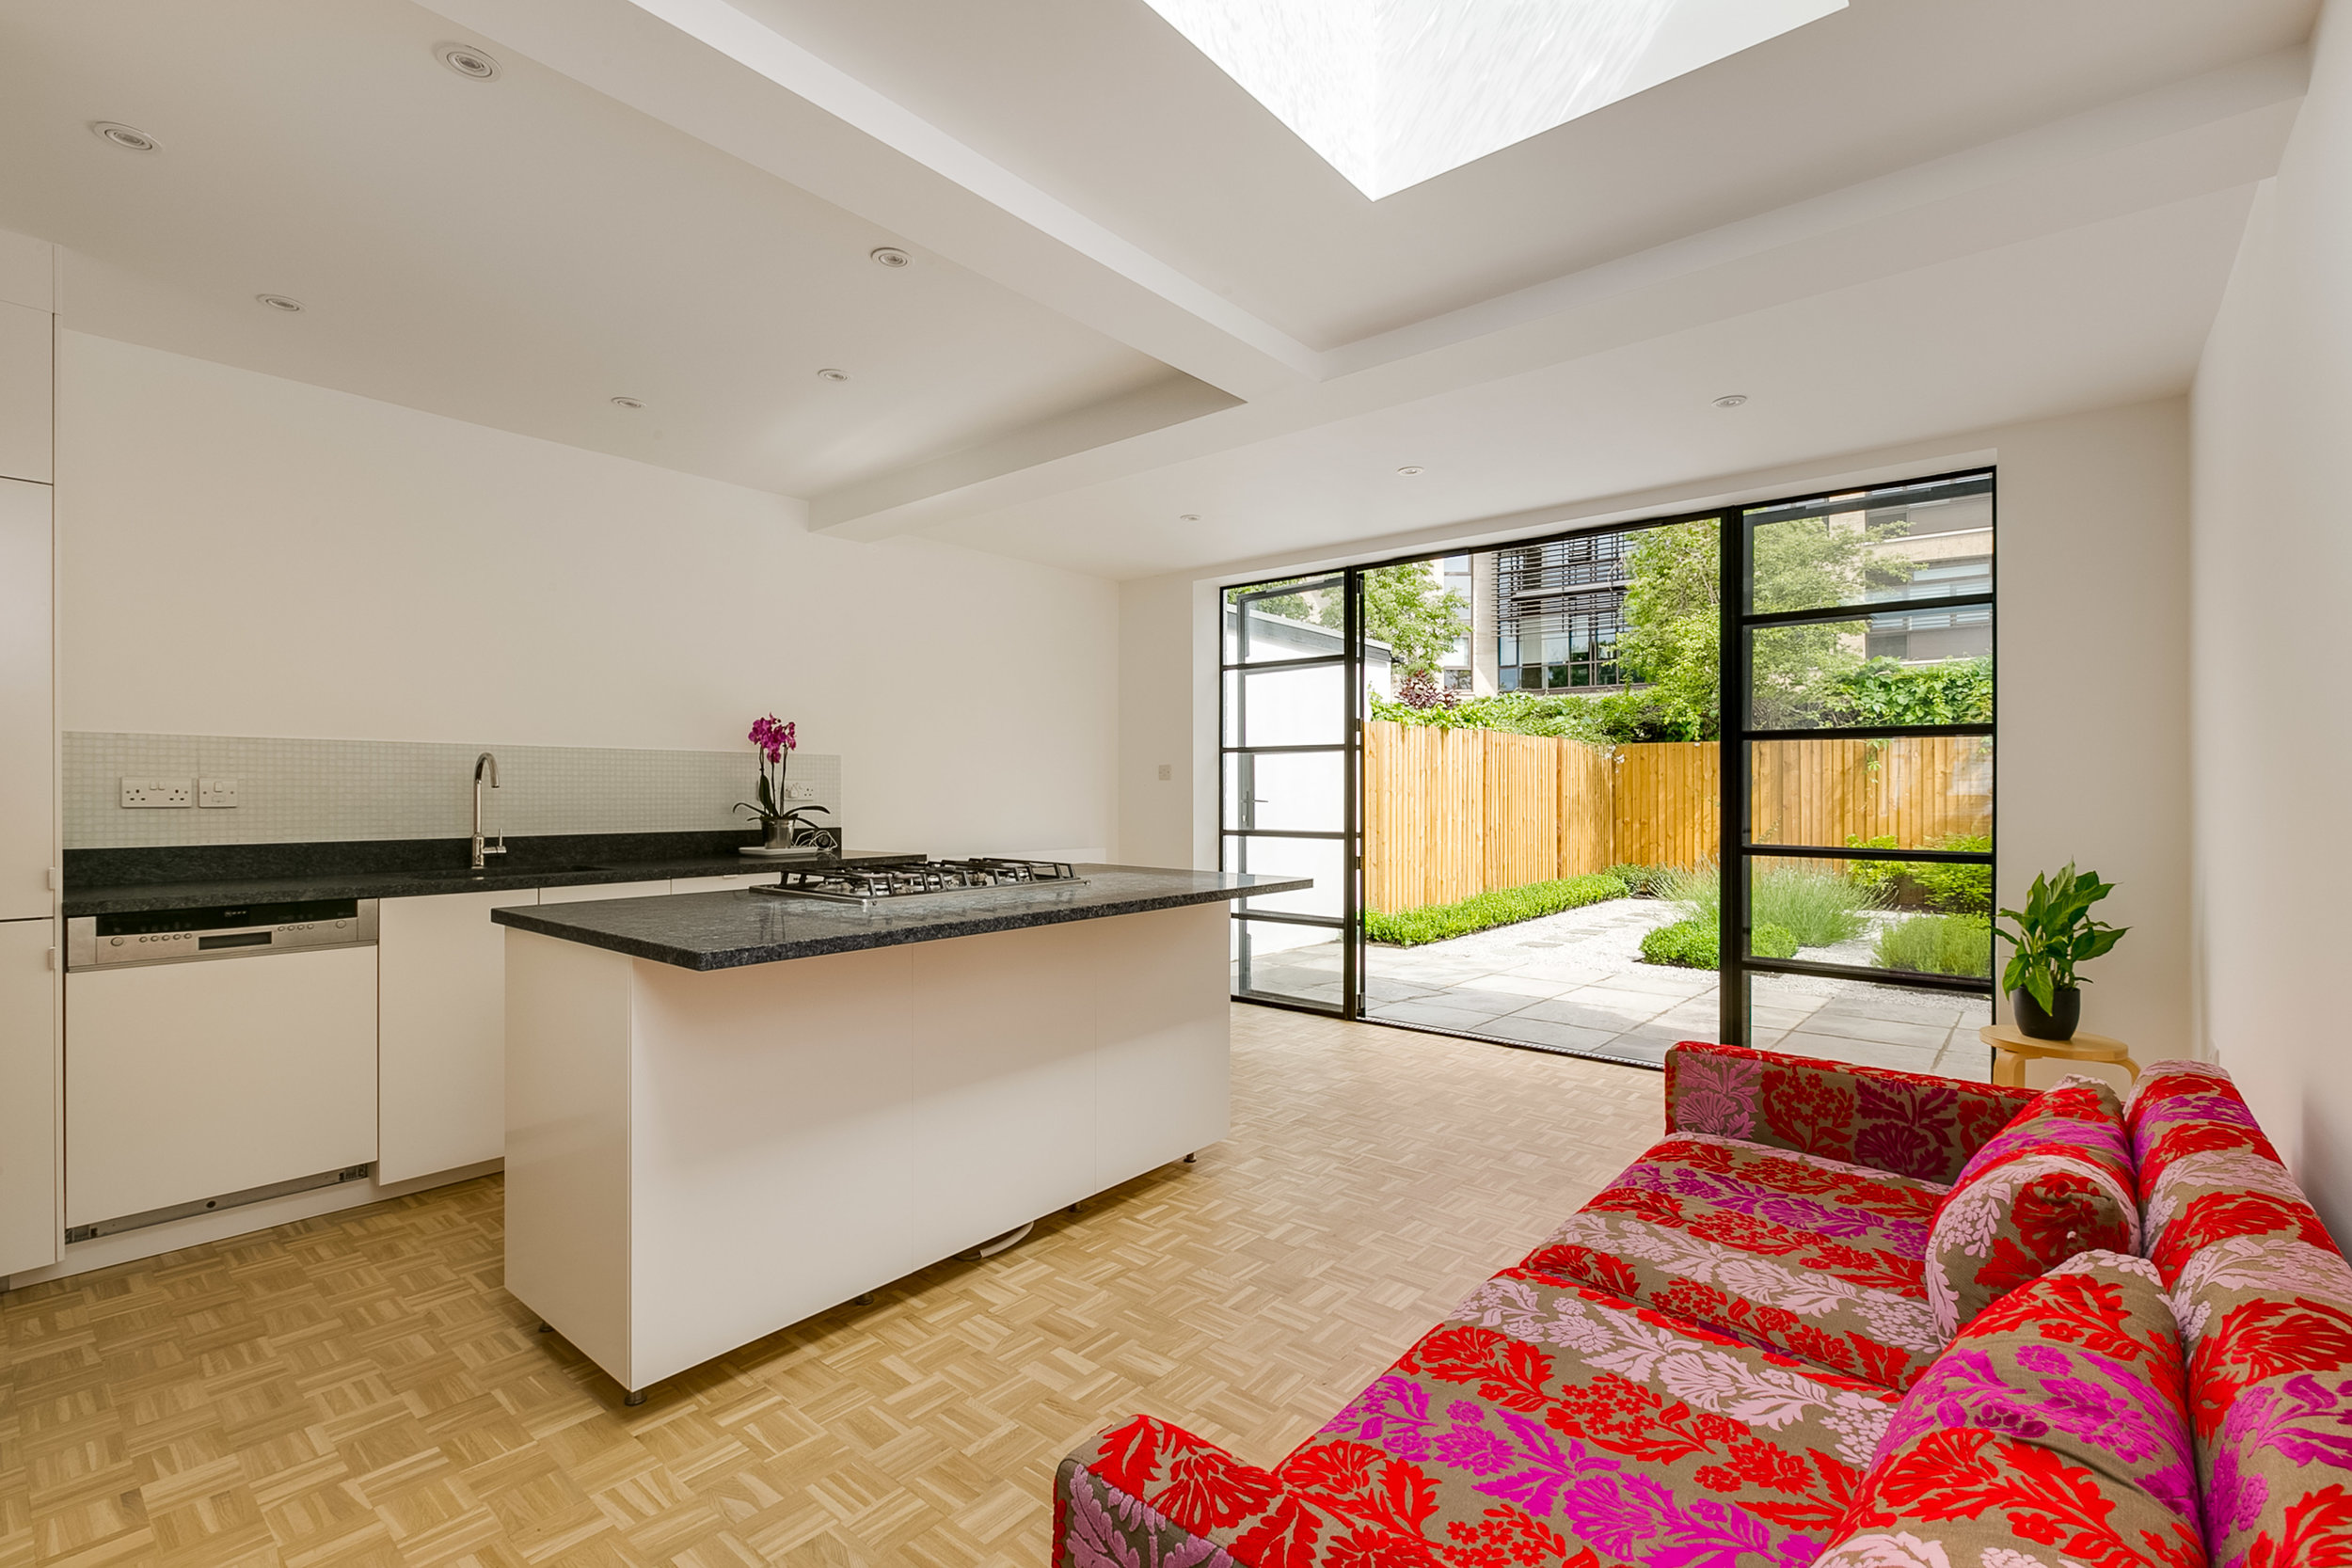 David Joseph Consulting Ltd Architechtural Design Consultancy in Forest Hill South East London 2.jpg